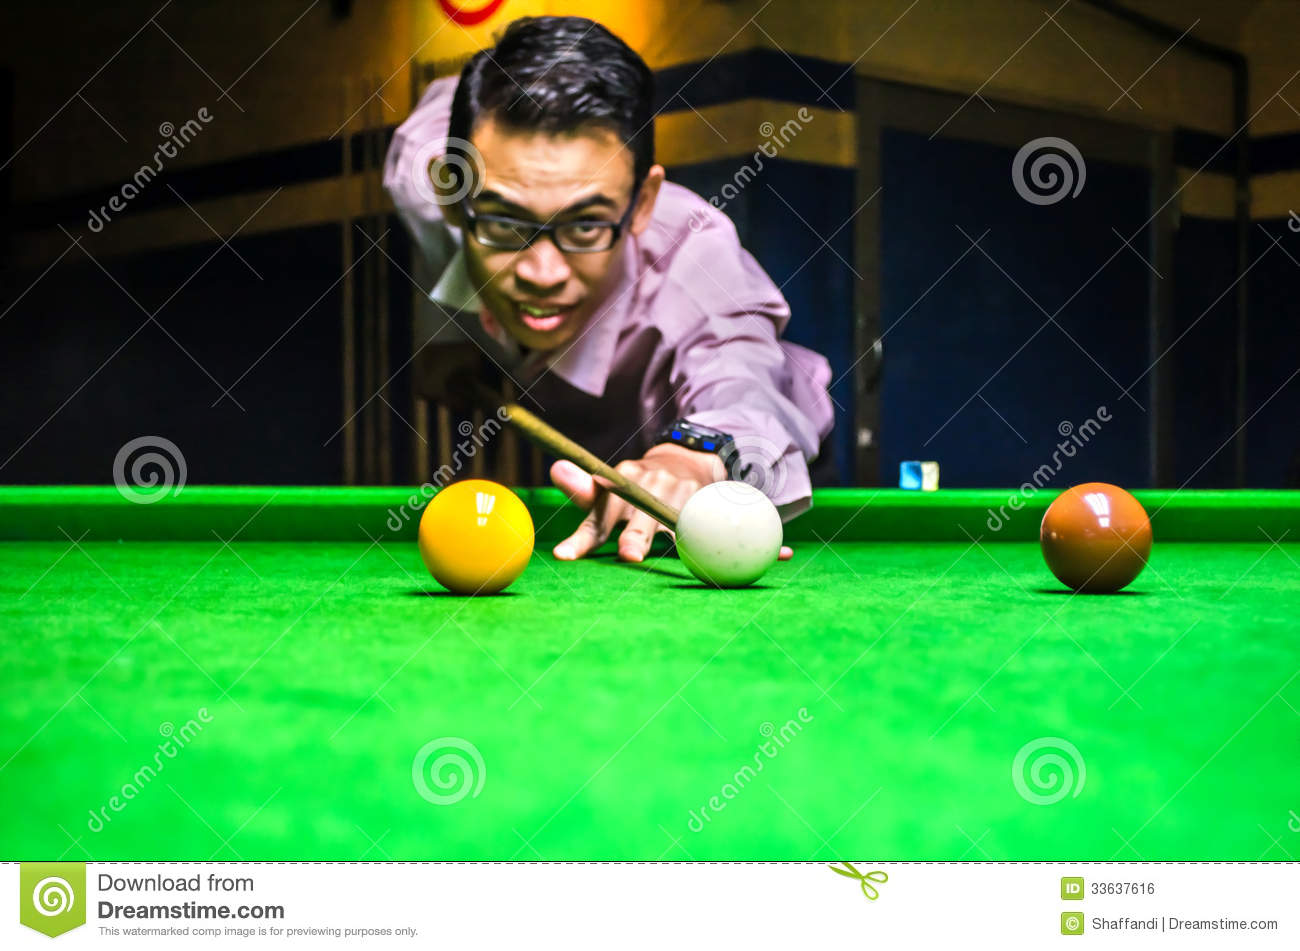 Snooker Player Placing The Cue Ball For A Shot Royalty